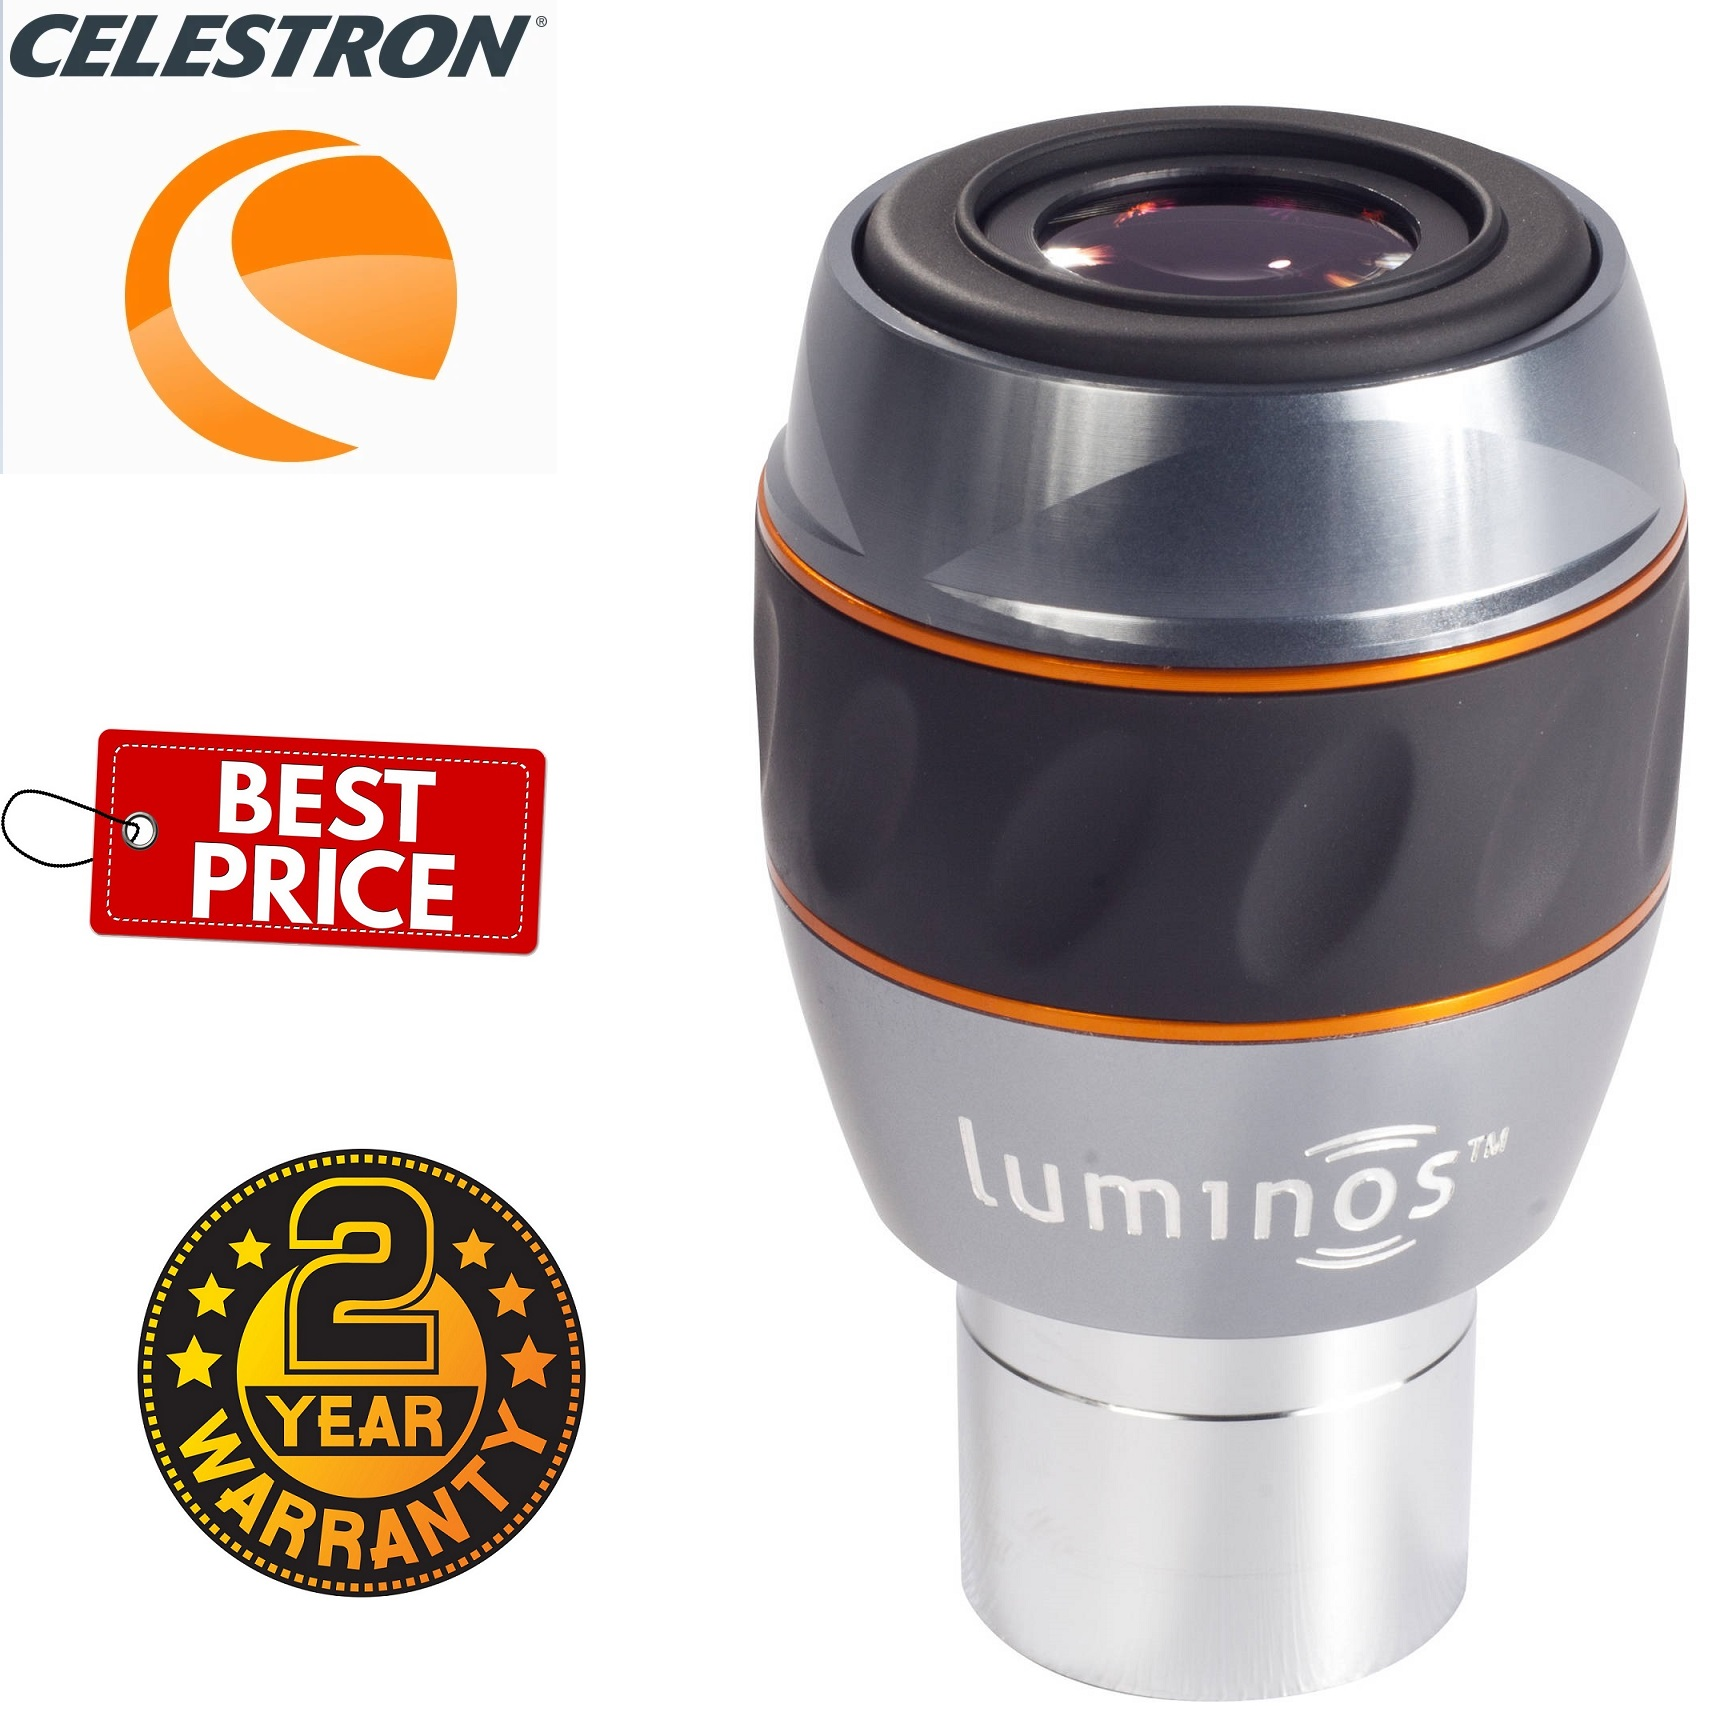 Celestron Luminos 10mm Eyepiece